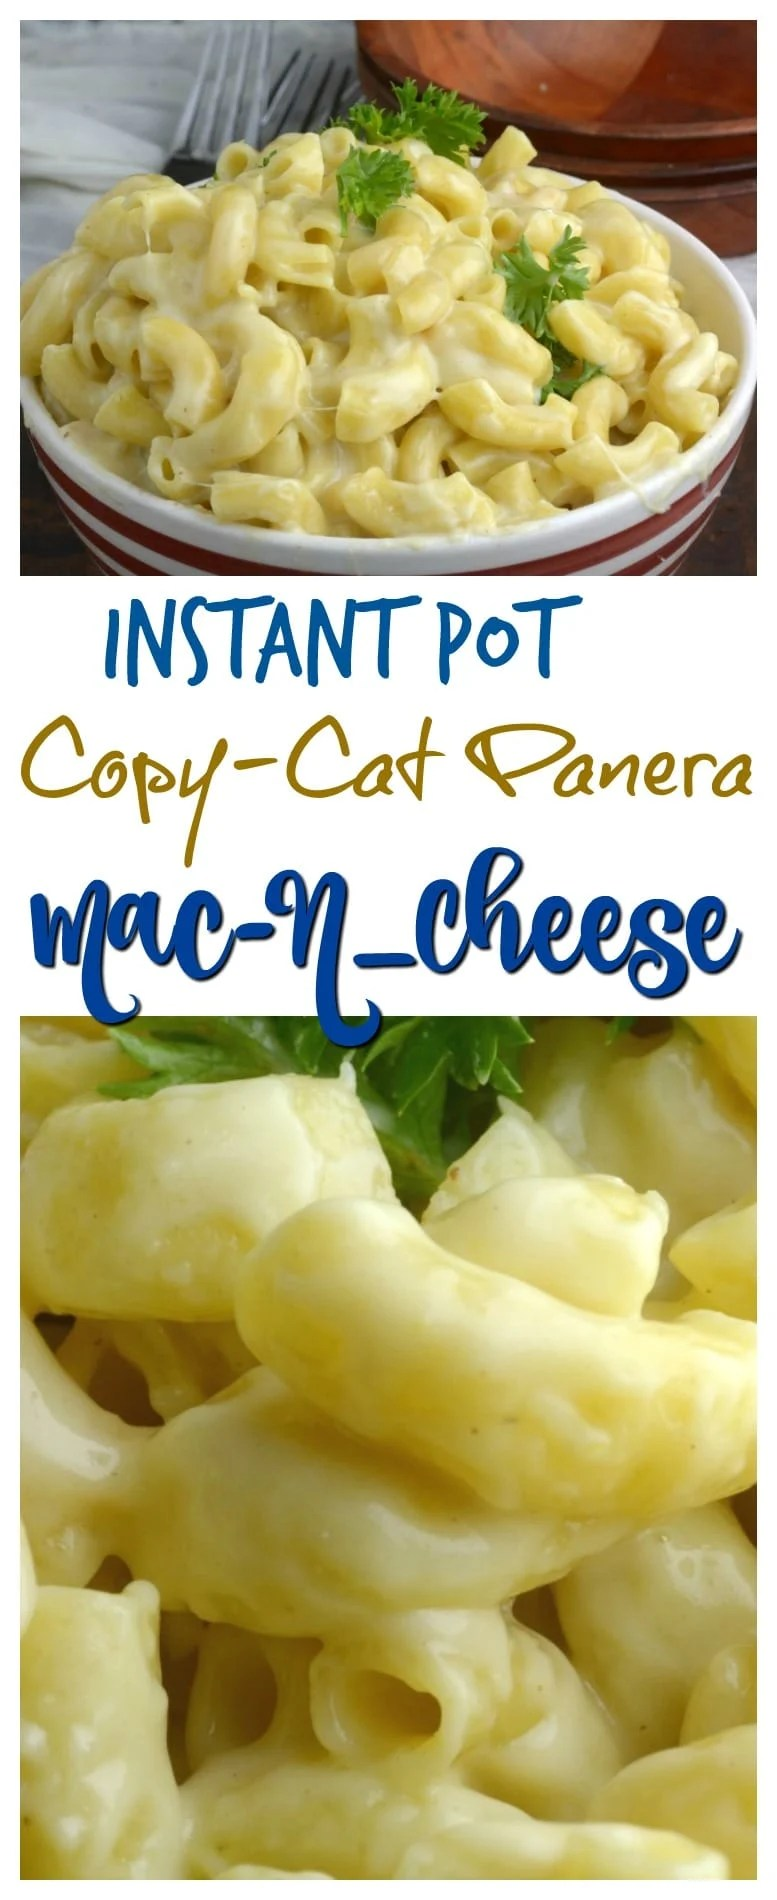 how to cook panera mac and cheese